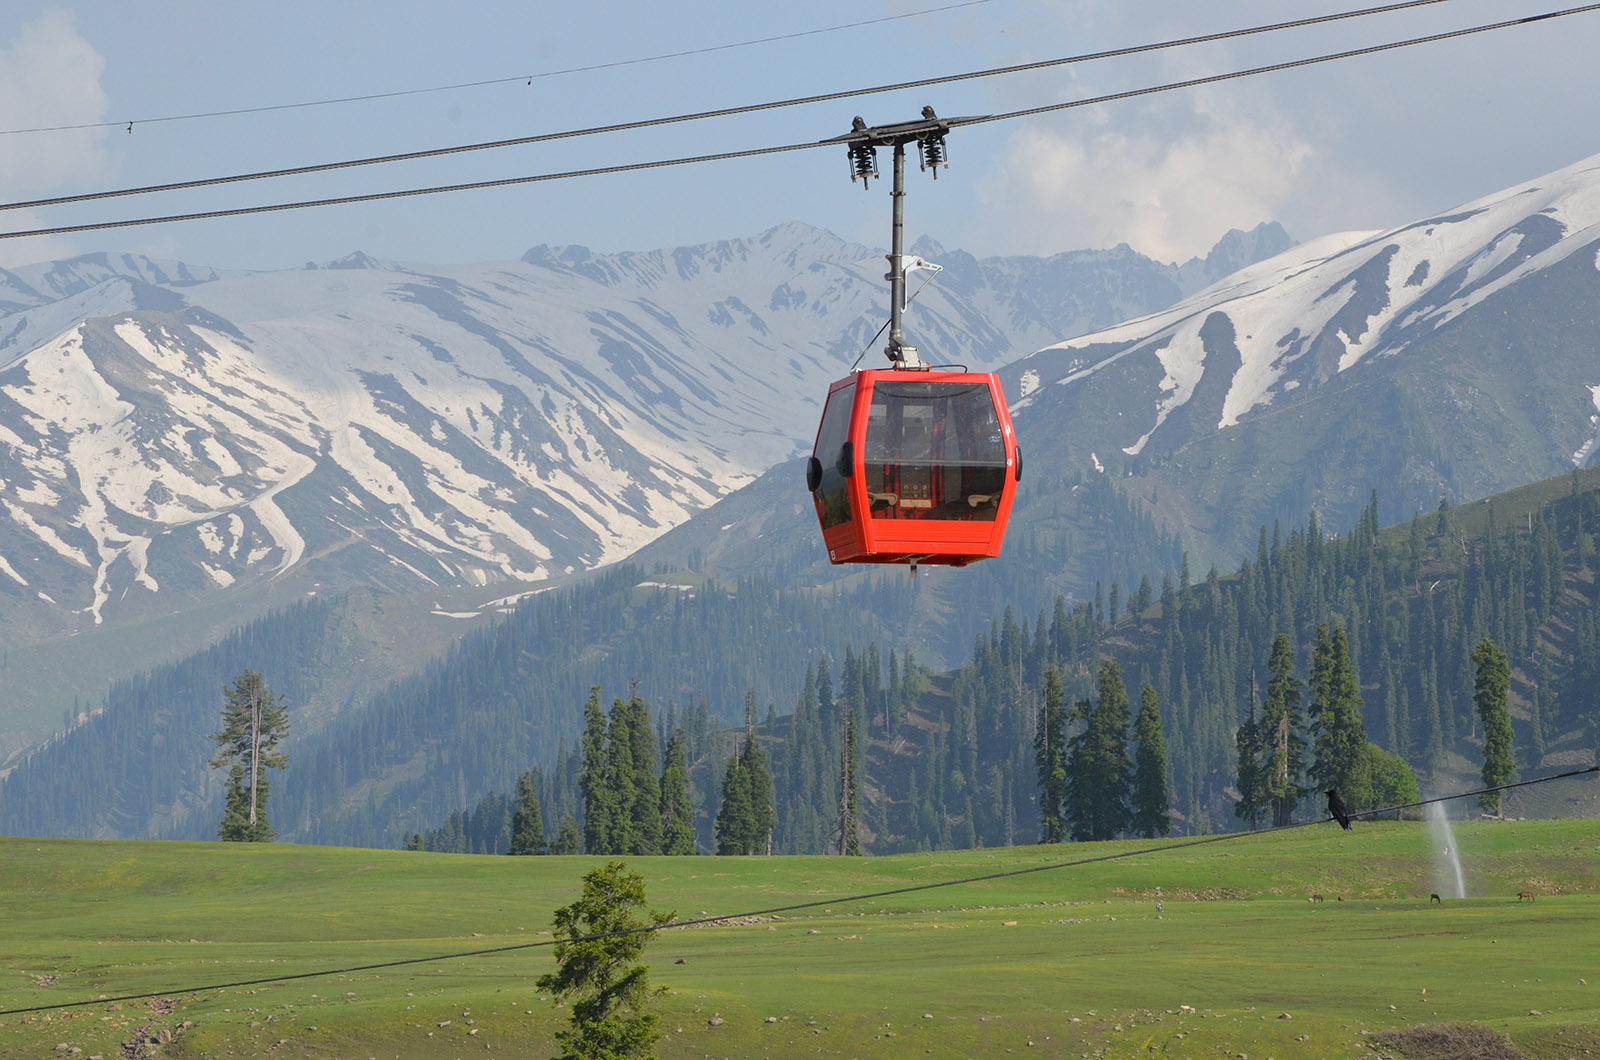 Srinagar Gulmarg Pahalgam Tour Packages